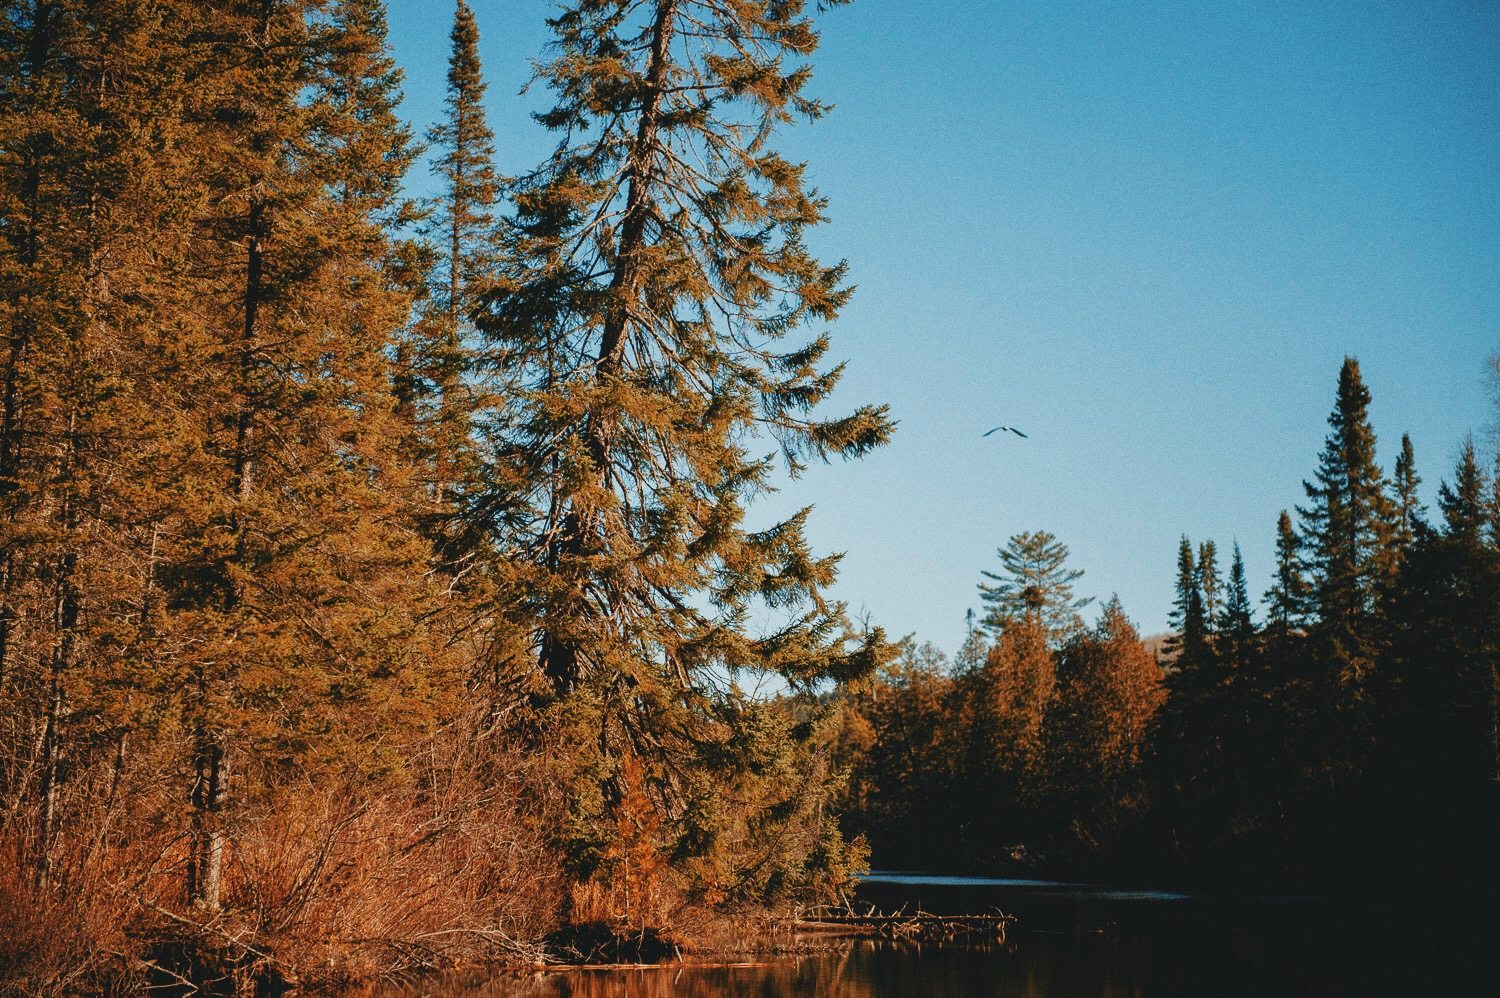 Field Journal: Among eagles, trout and cabins